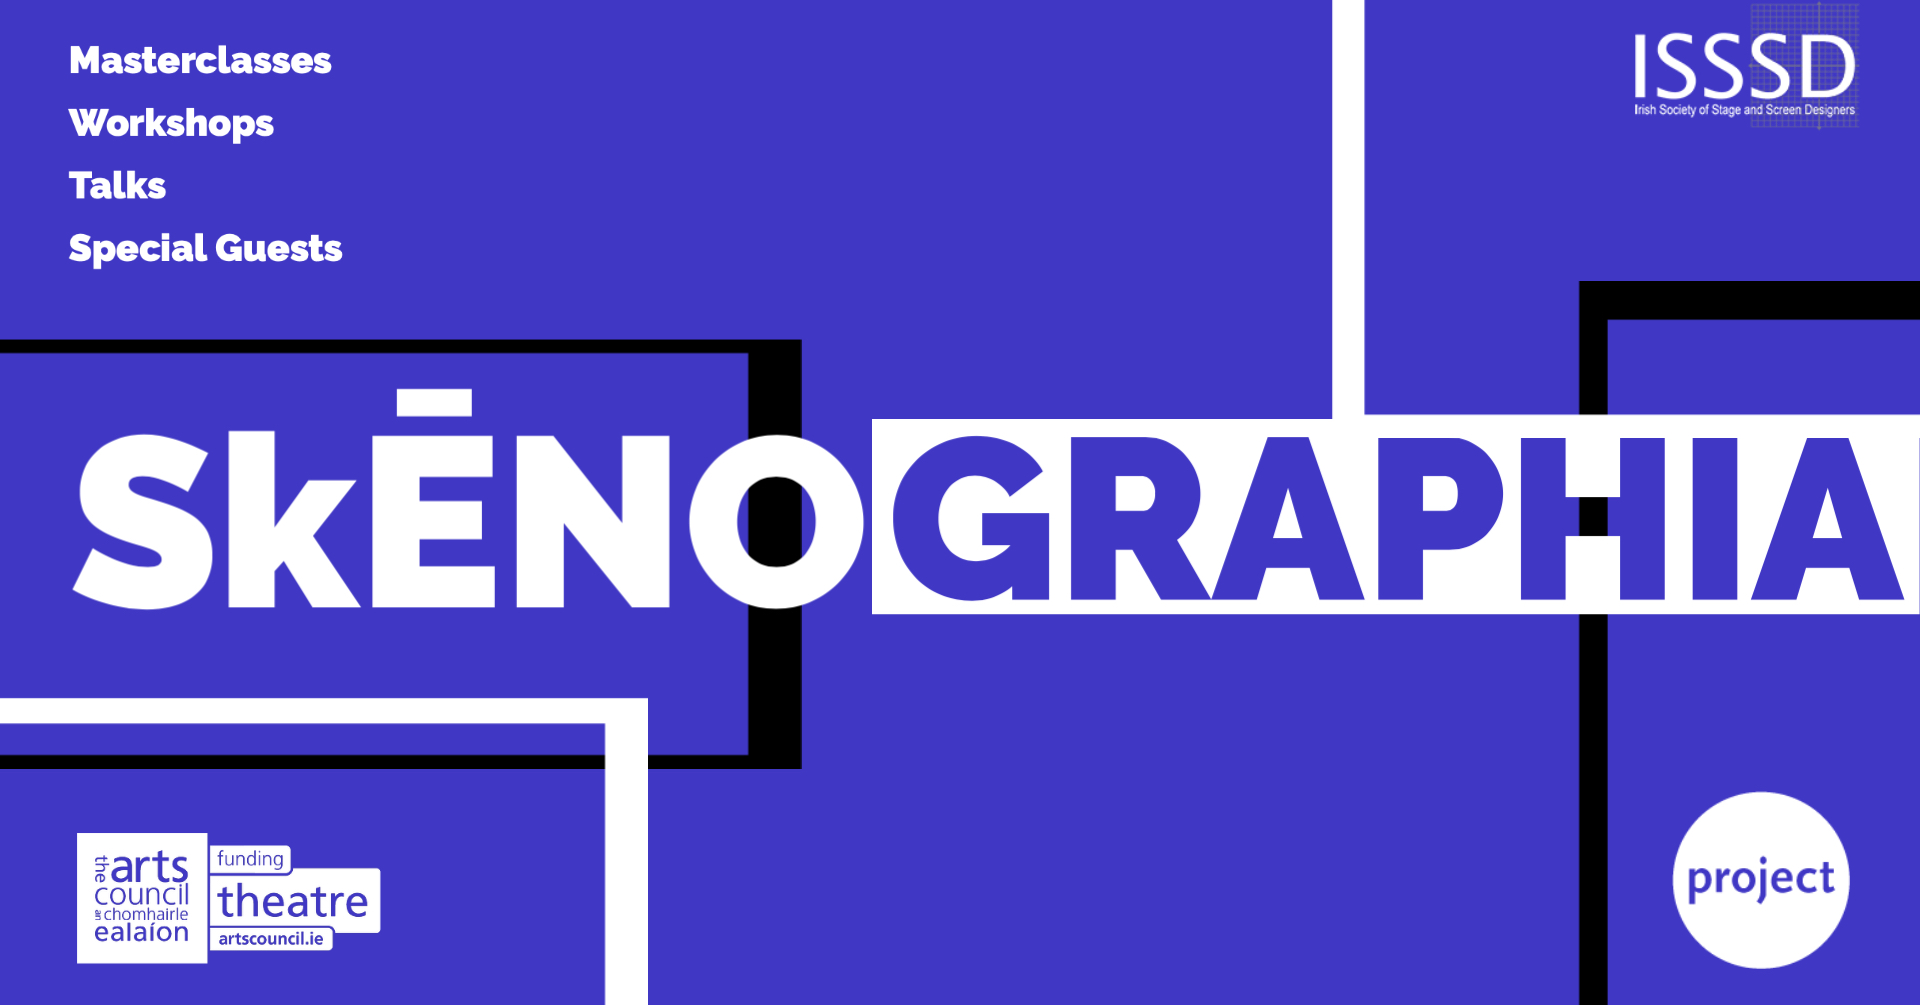 SkĒNOGRAPHIA Funded by the Arts Council